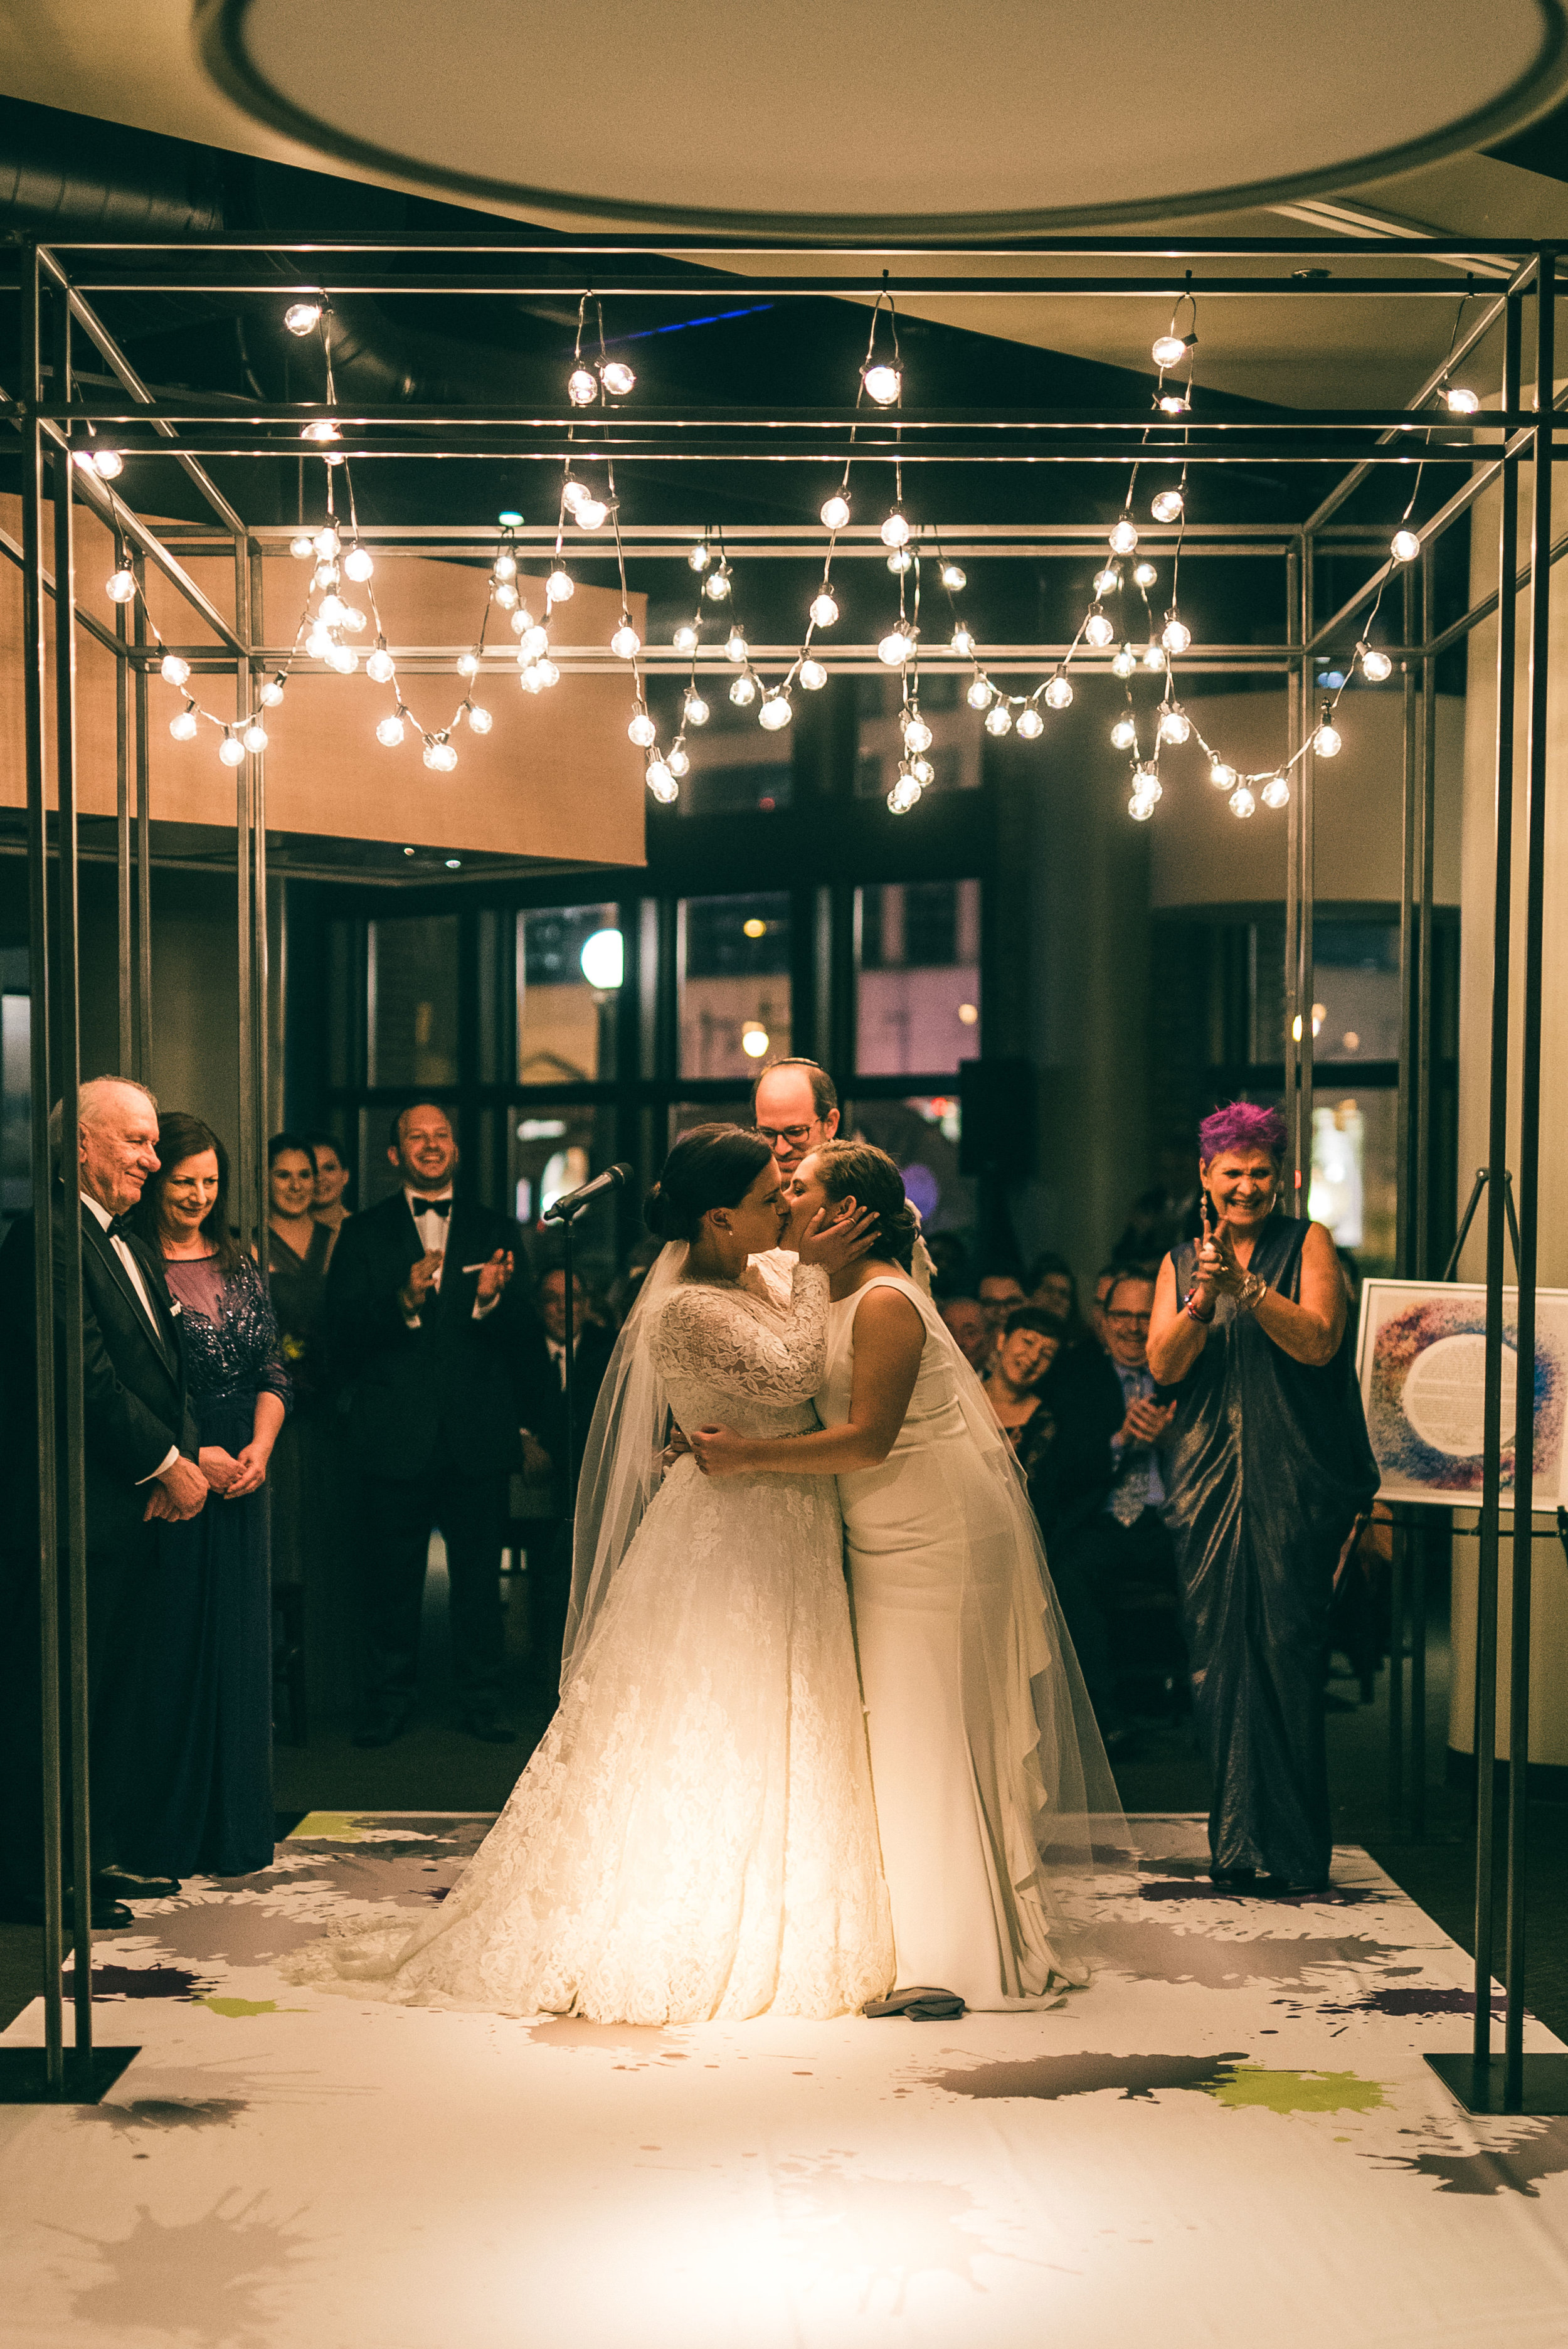 Nighttime Jewish same sex wedding ceremony at River Roast Social House in Chiago